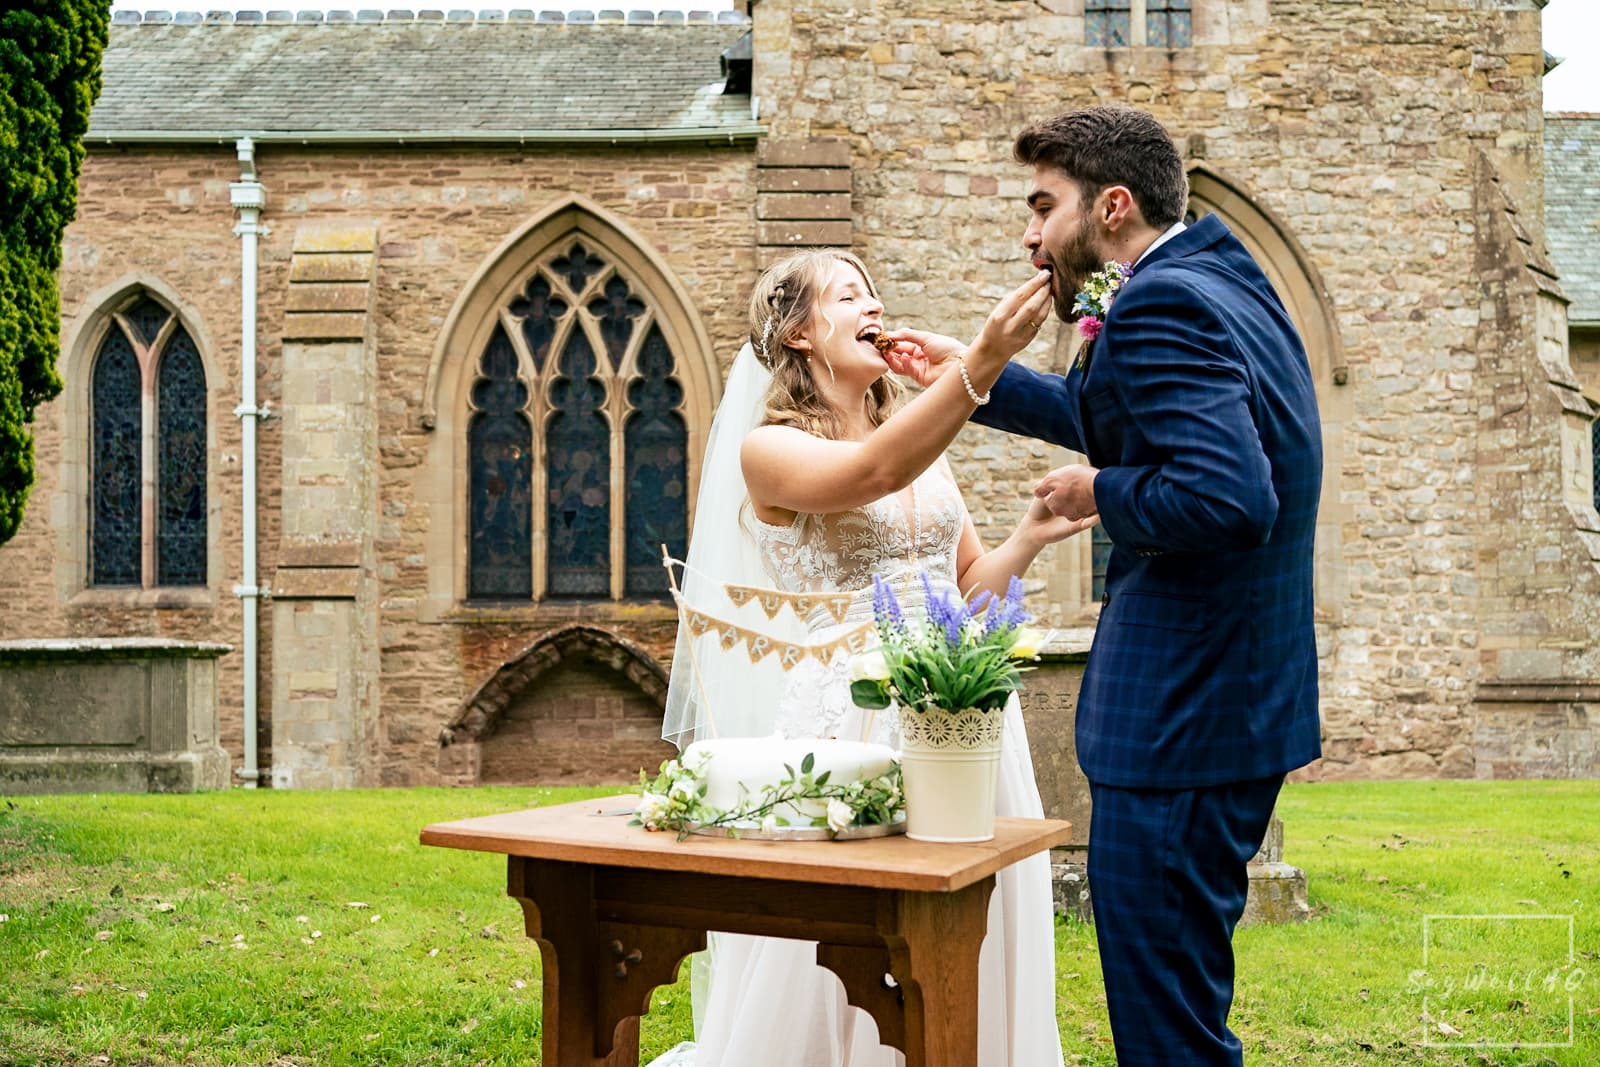 Hereford Church Wedding Photography - Bride and Groom cut the wedding cake in the grounds of the Church